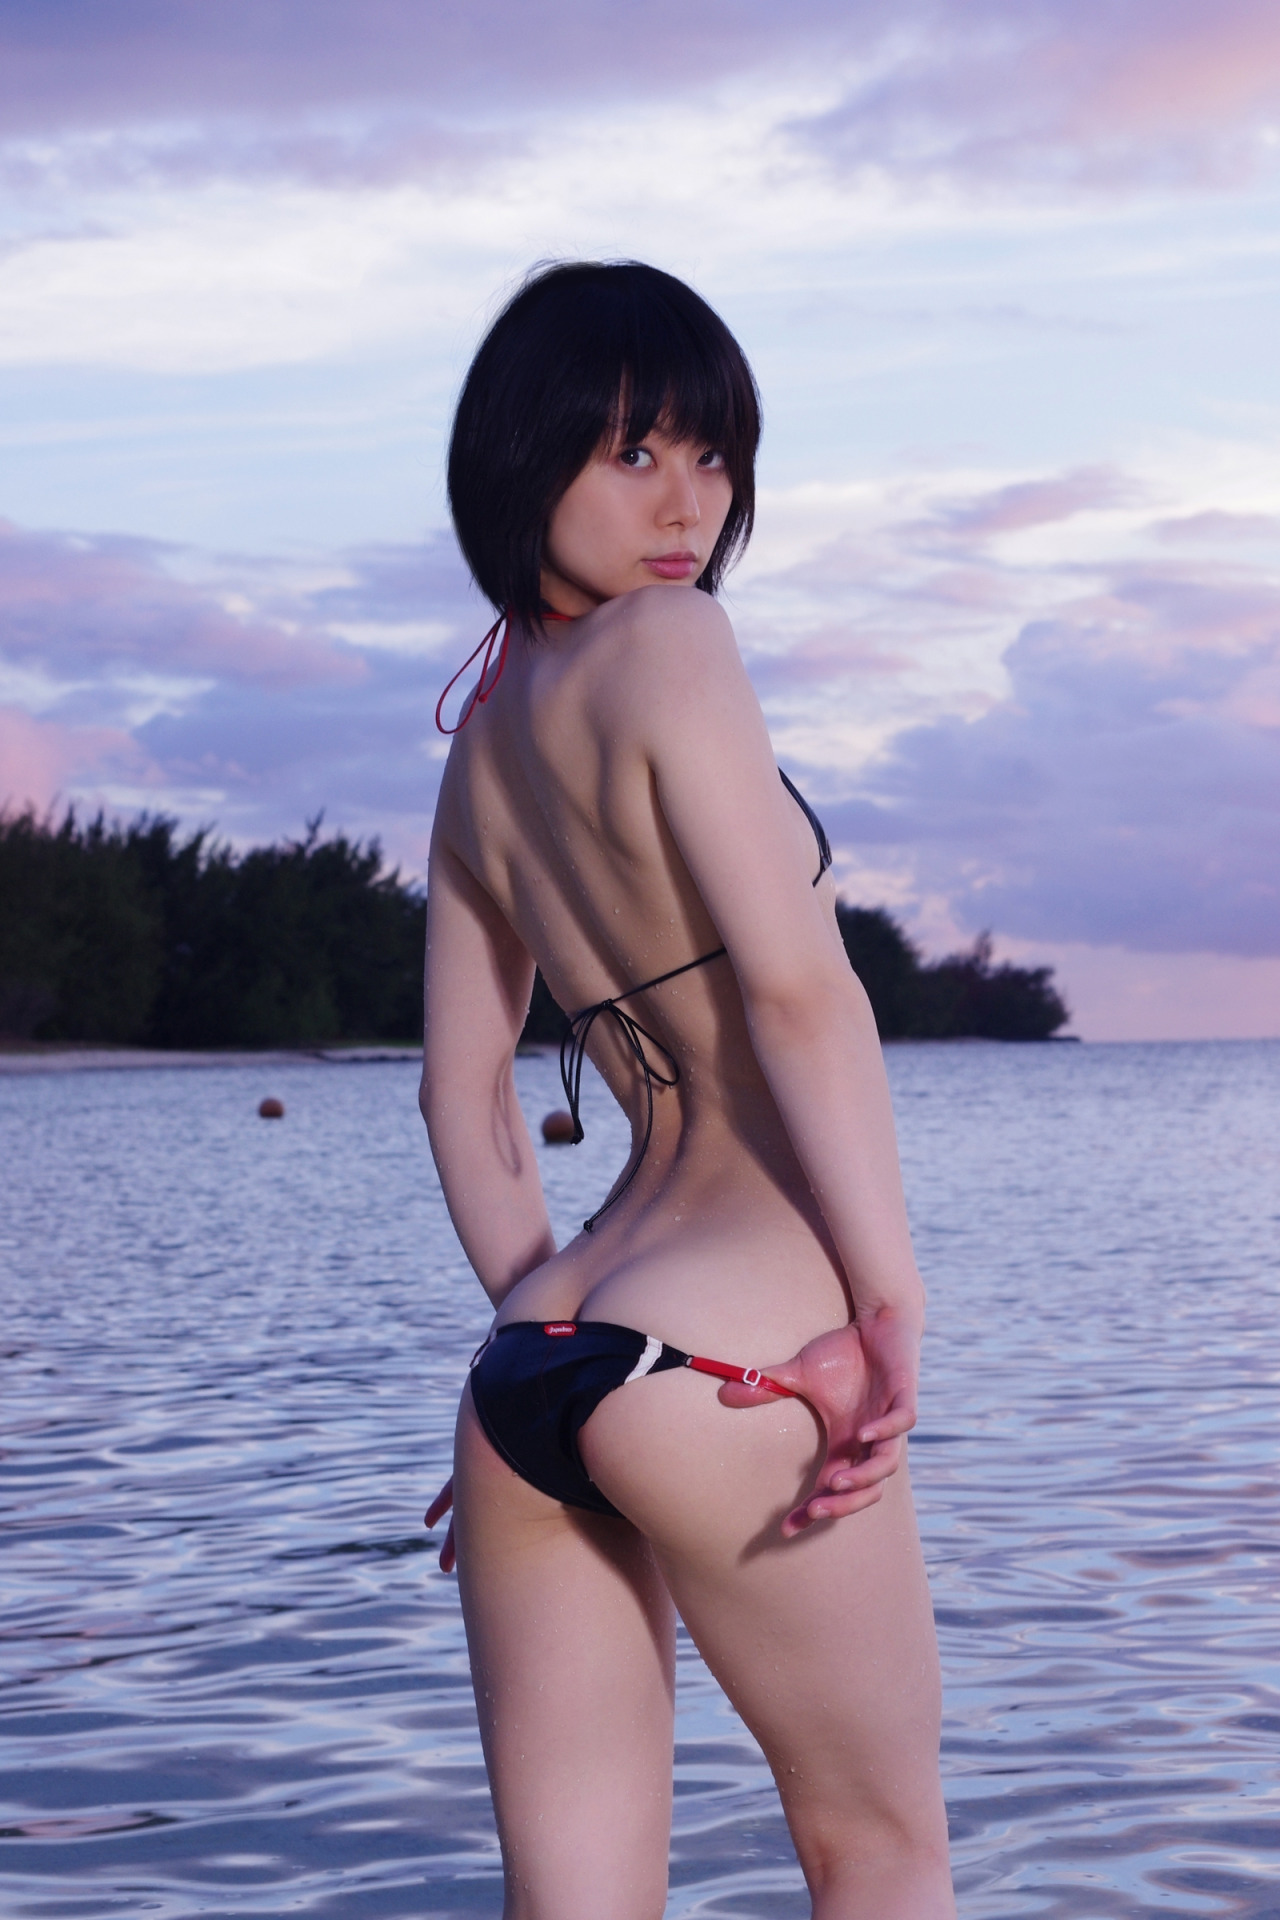 Strap on women free videos asian women  live sex cam to cam asian tigers